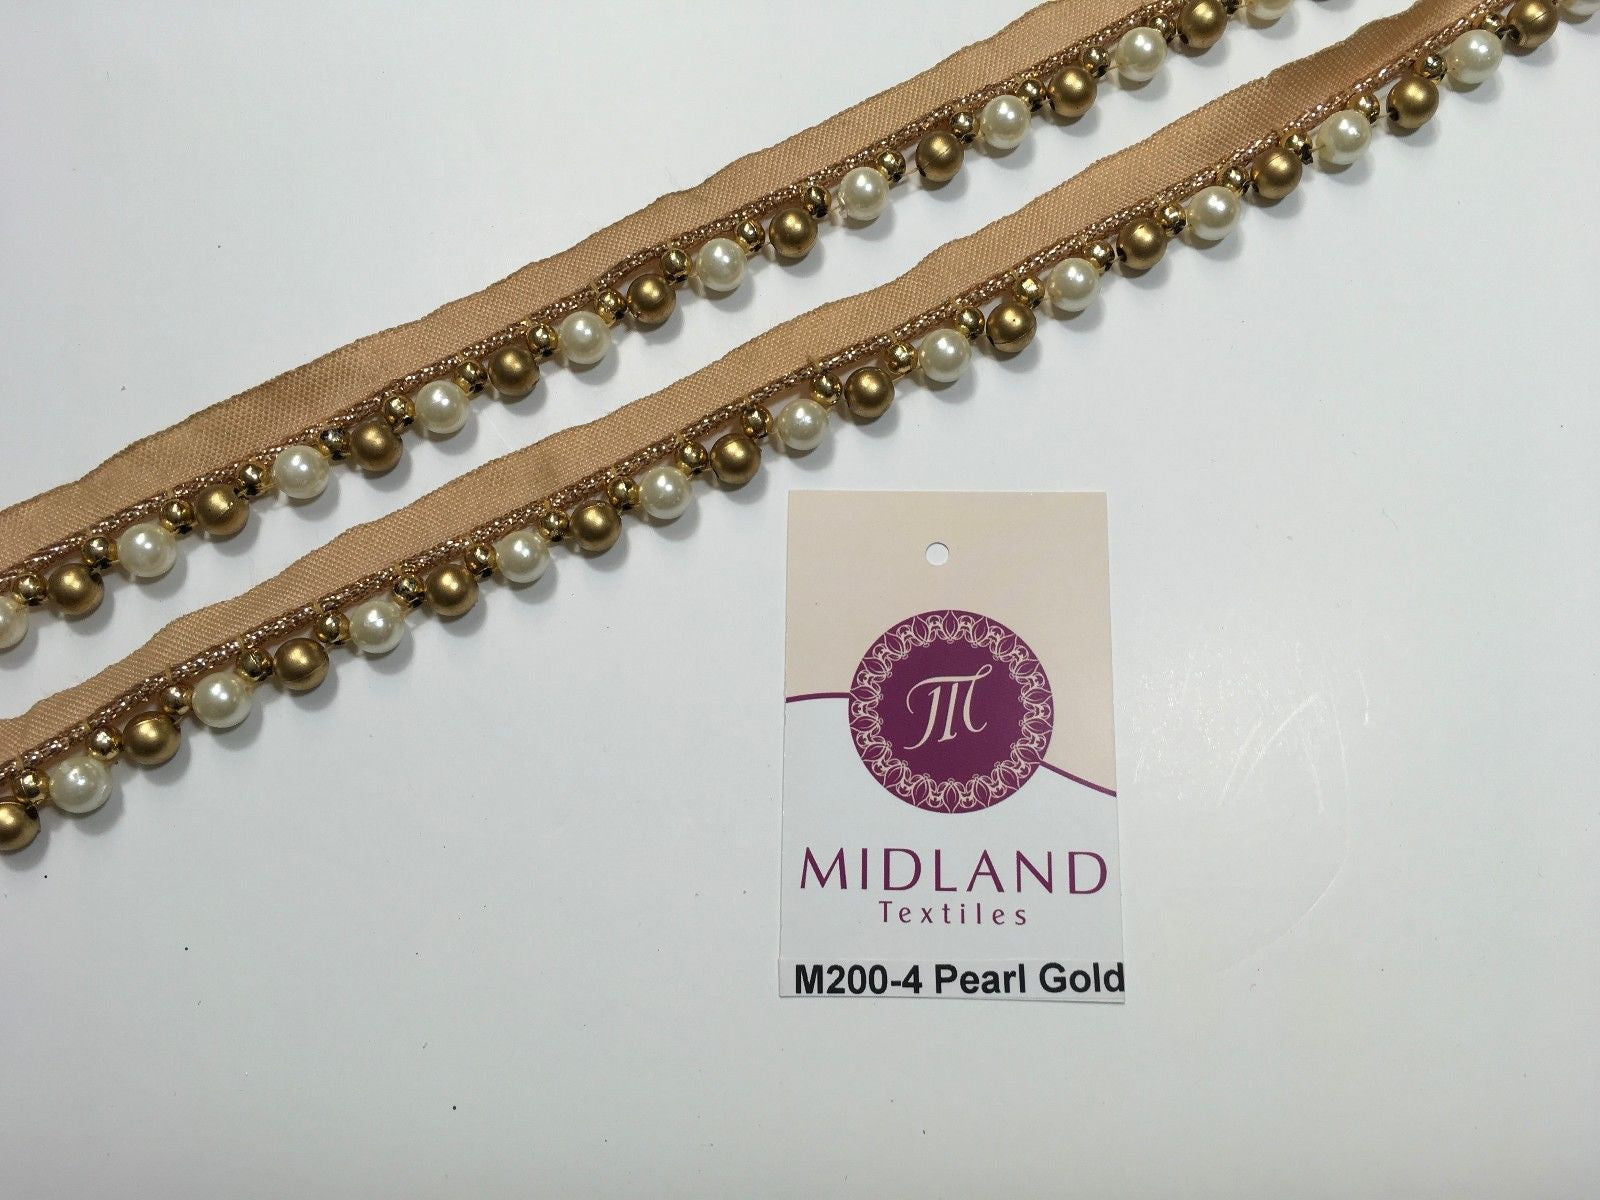 Vintage Pearl beaded Ribbon Crafting, Edging and Trimmings M200 Mtex - Midland Textiles & Fabric